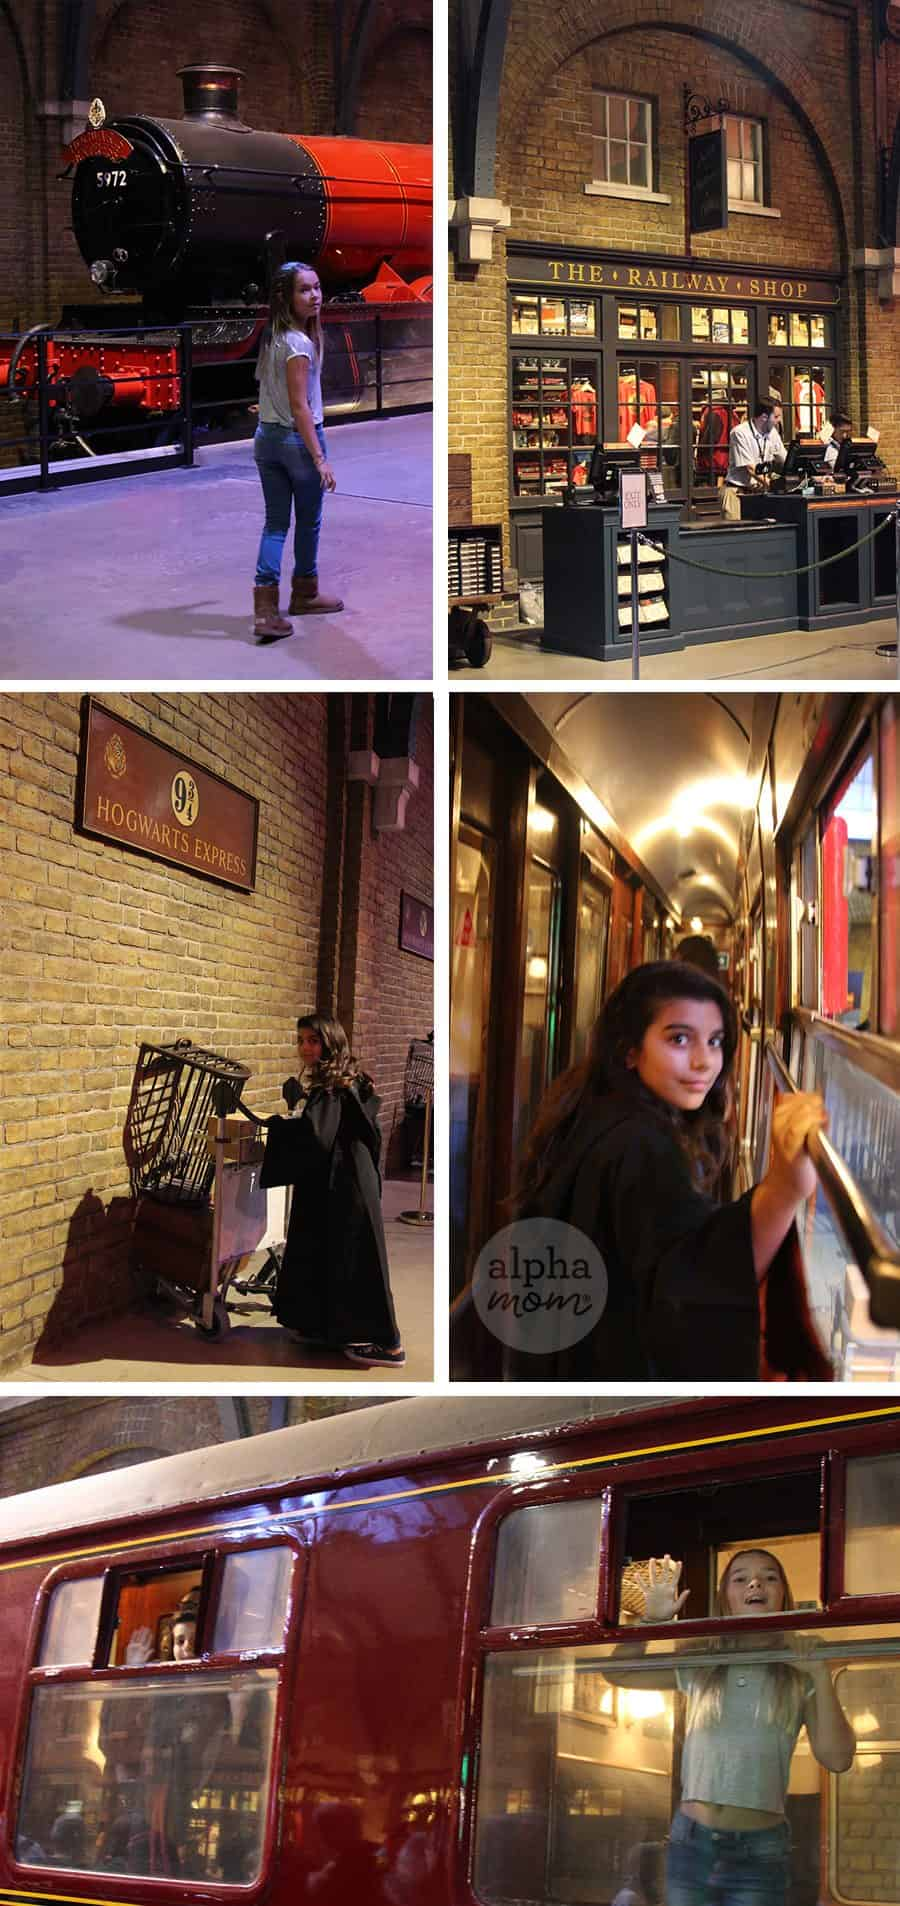 Studio Tour of the Making of Harry Potter Review (Hogwarts Express) by Brenda Ponnay for Alphamom.com